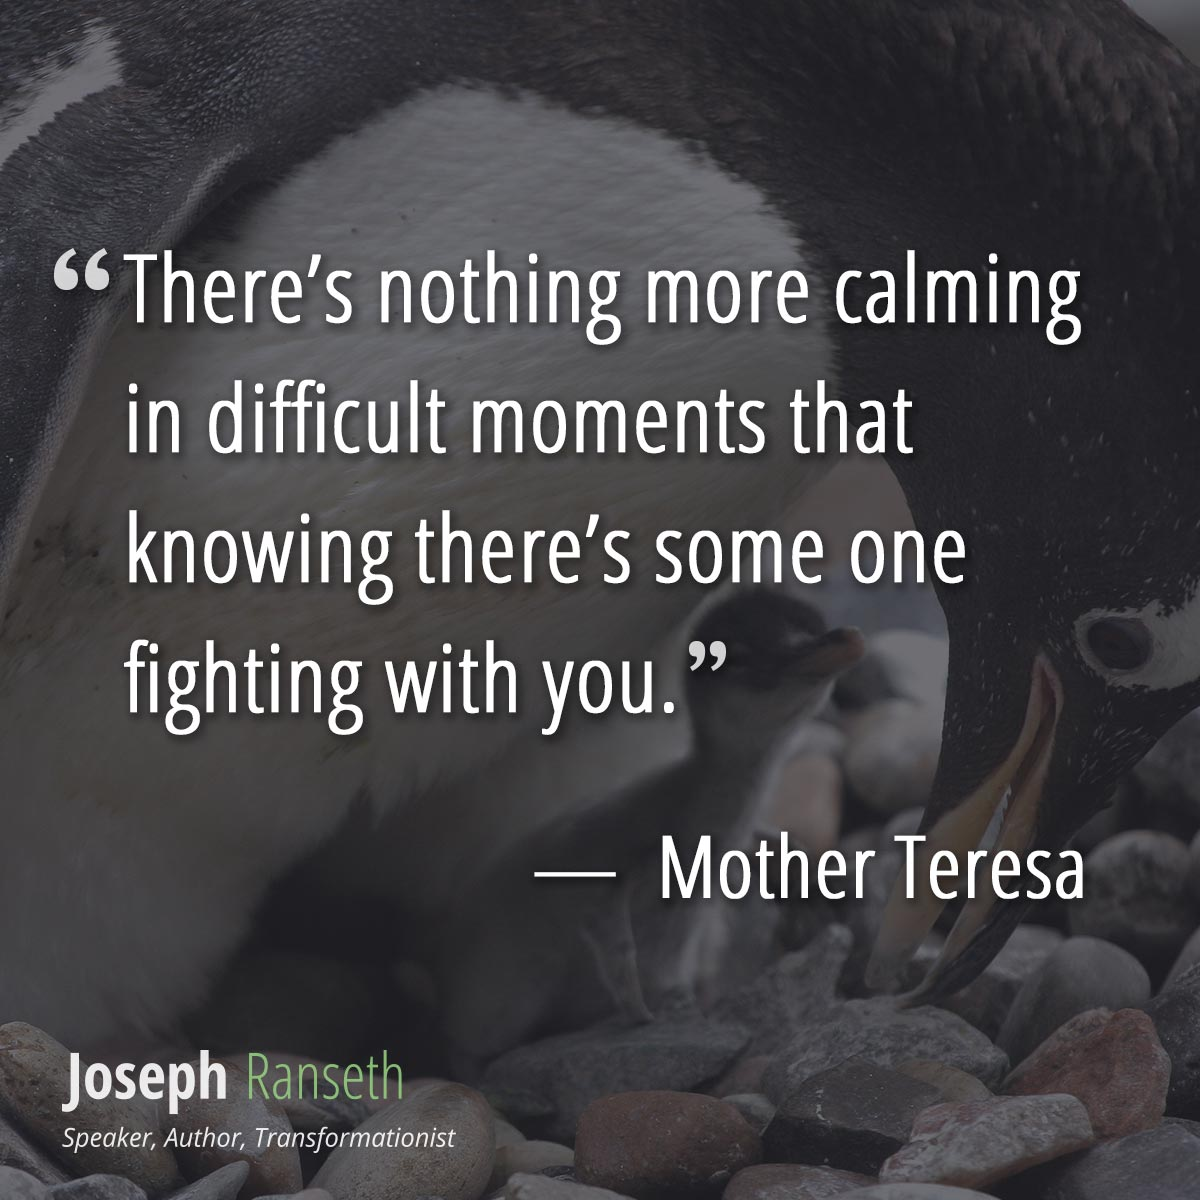 There's nothing more calming in difficult moments that knowing there's some one fighting with you.